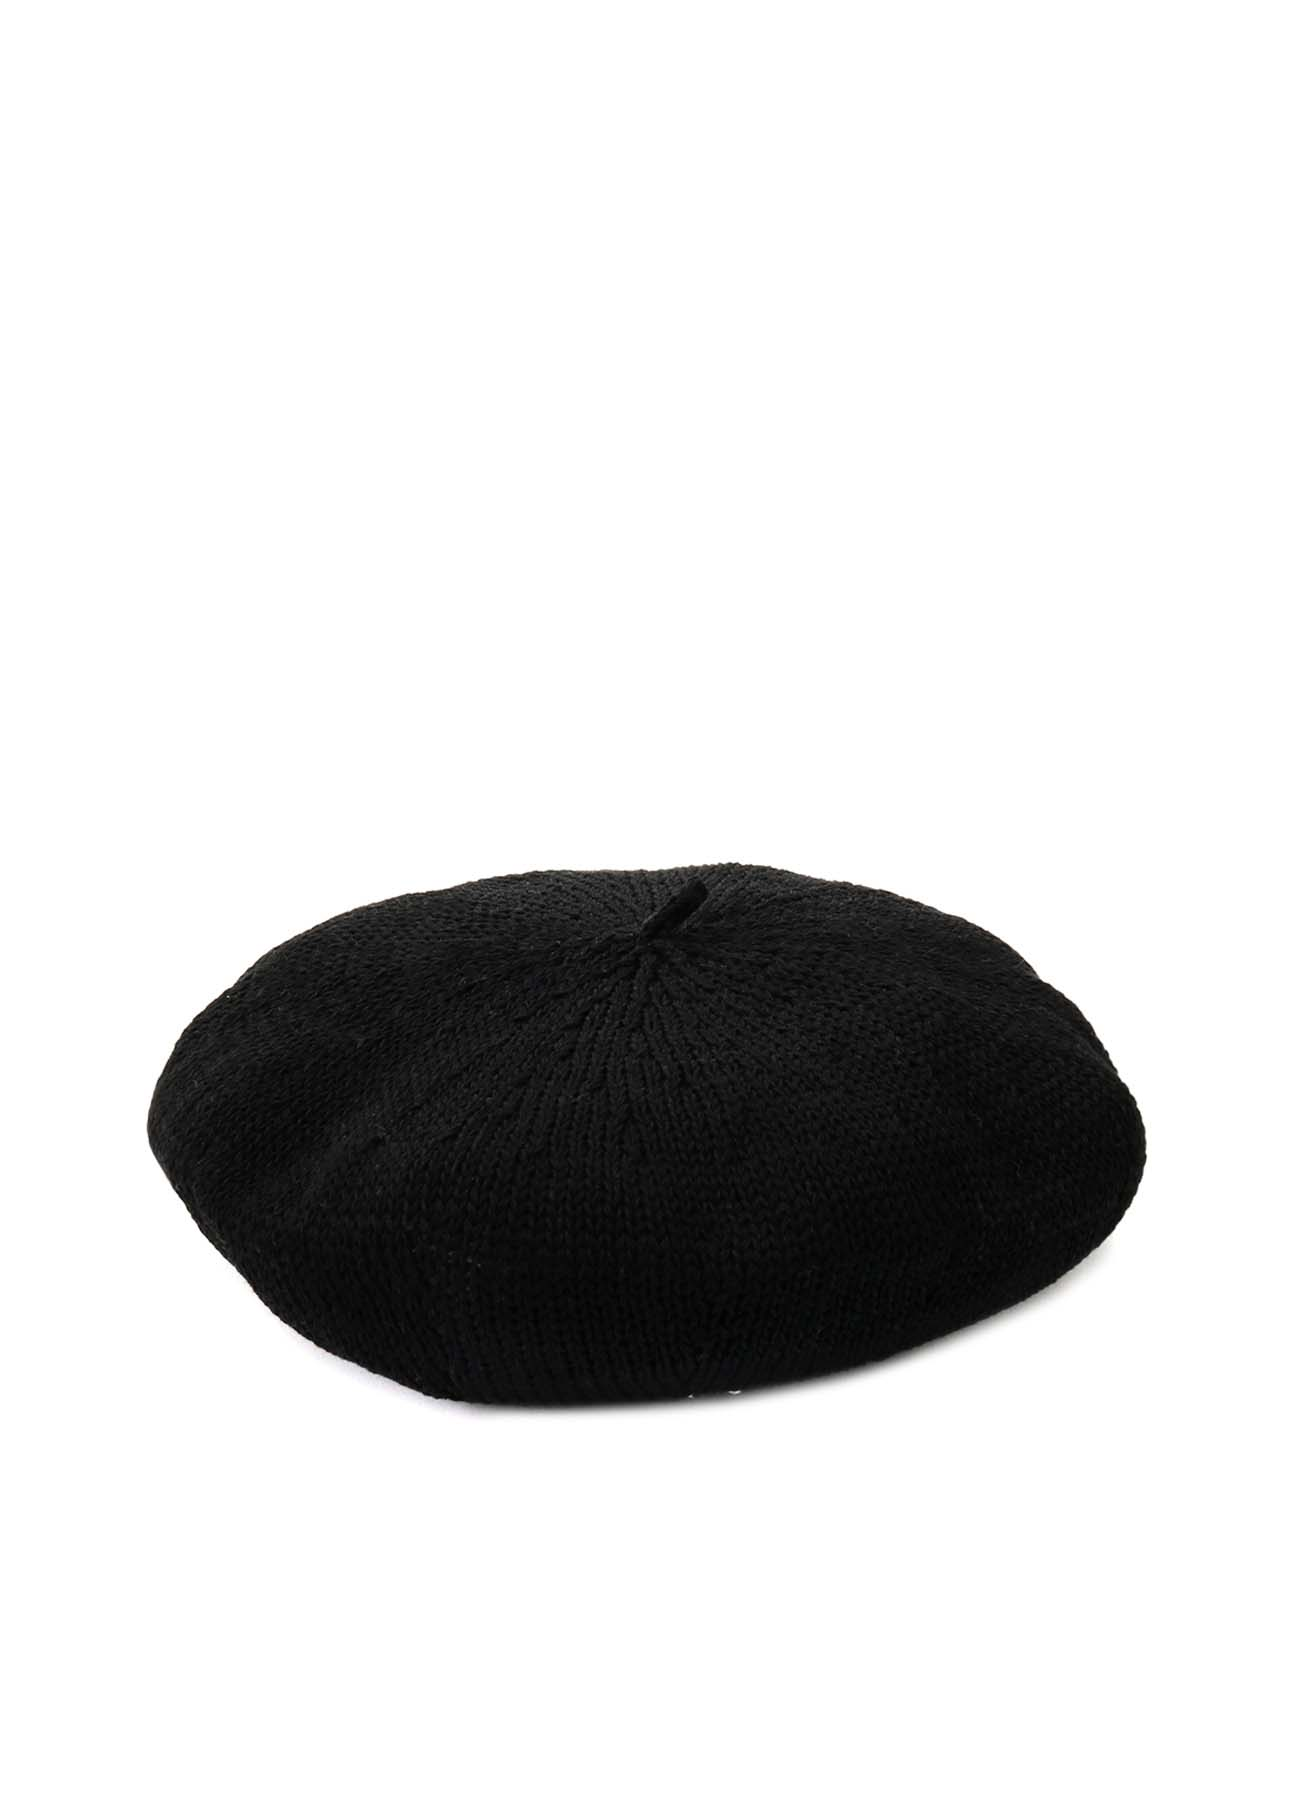 COTTON KNIT BERET